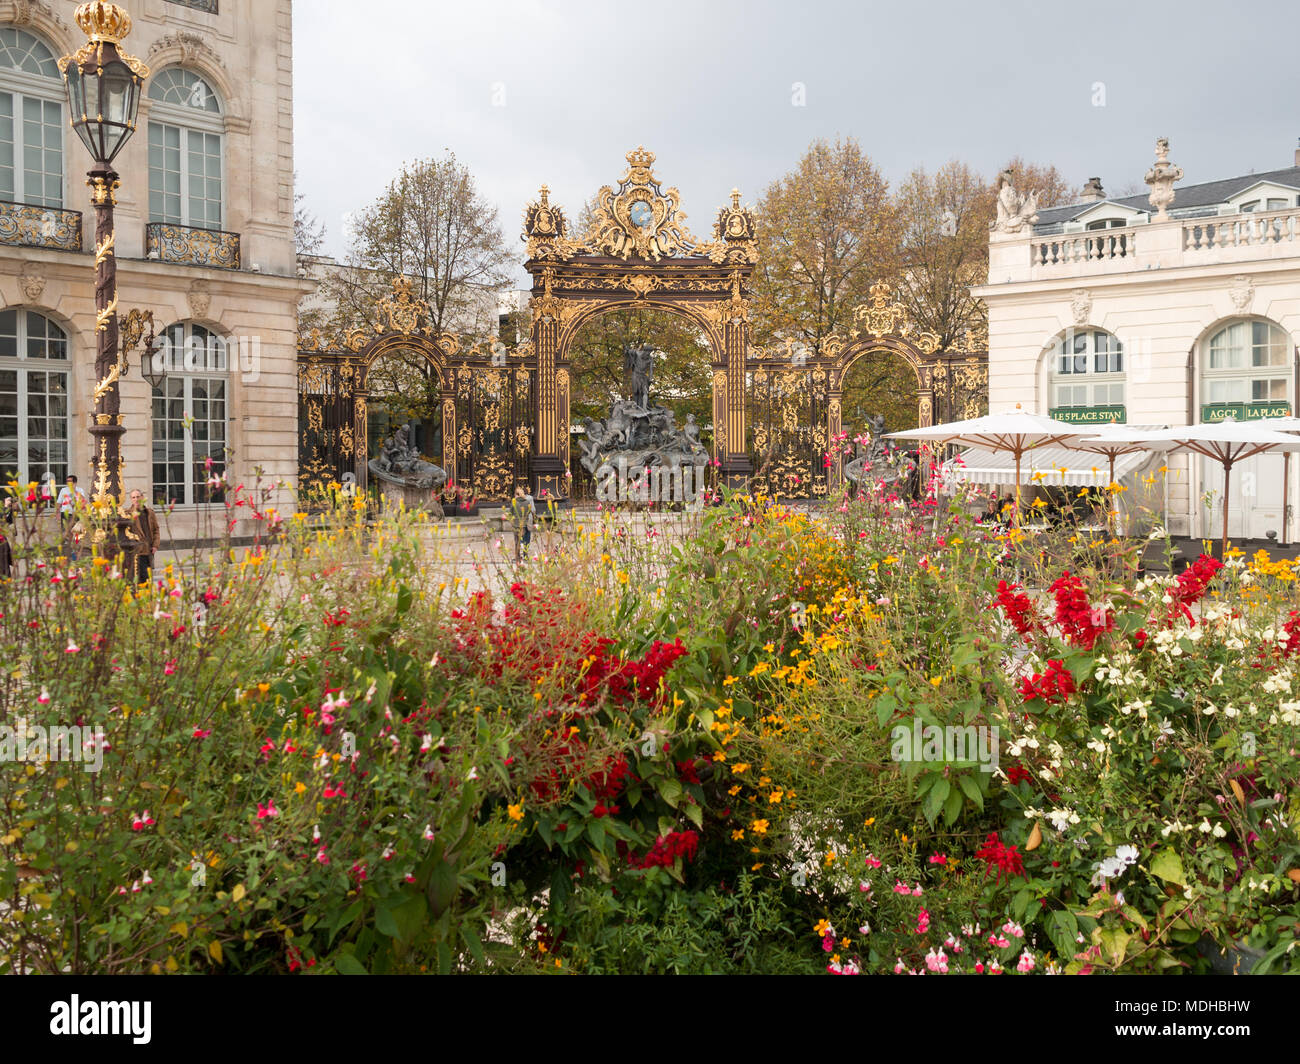 Flower Plant Grand Place Stock Photos & Flower Plant Grand Place ...